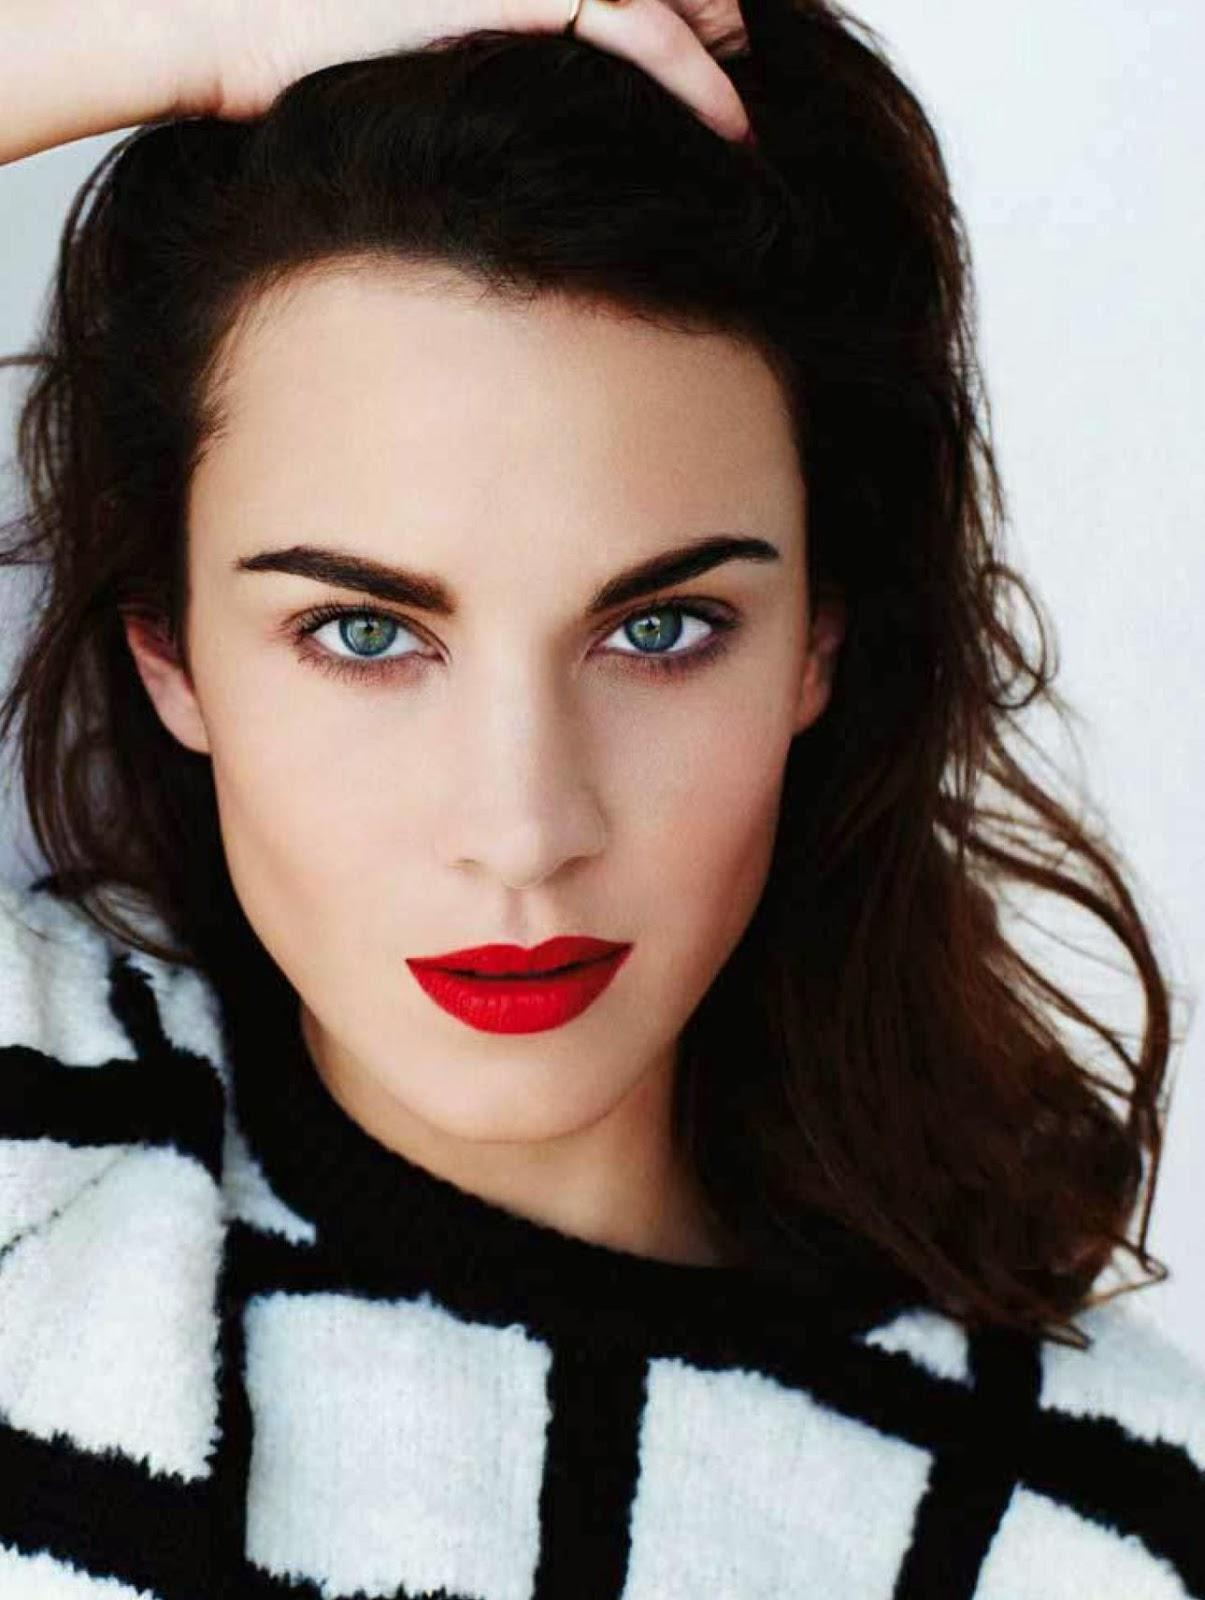 Alexa Chung is wearing Russian Red lipstick by MAC